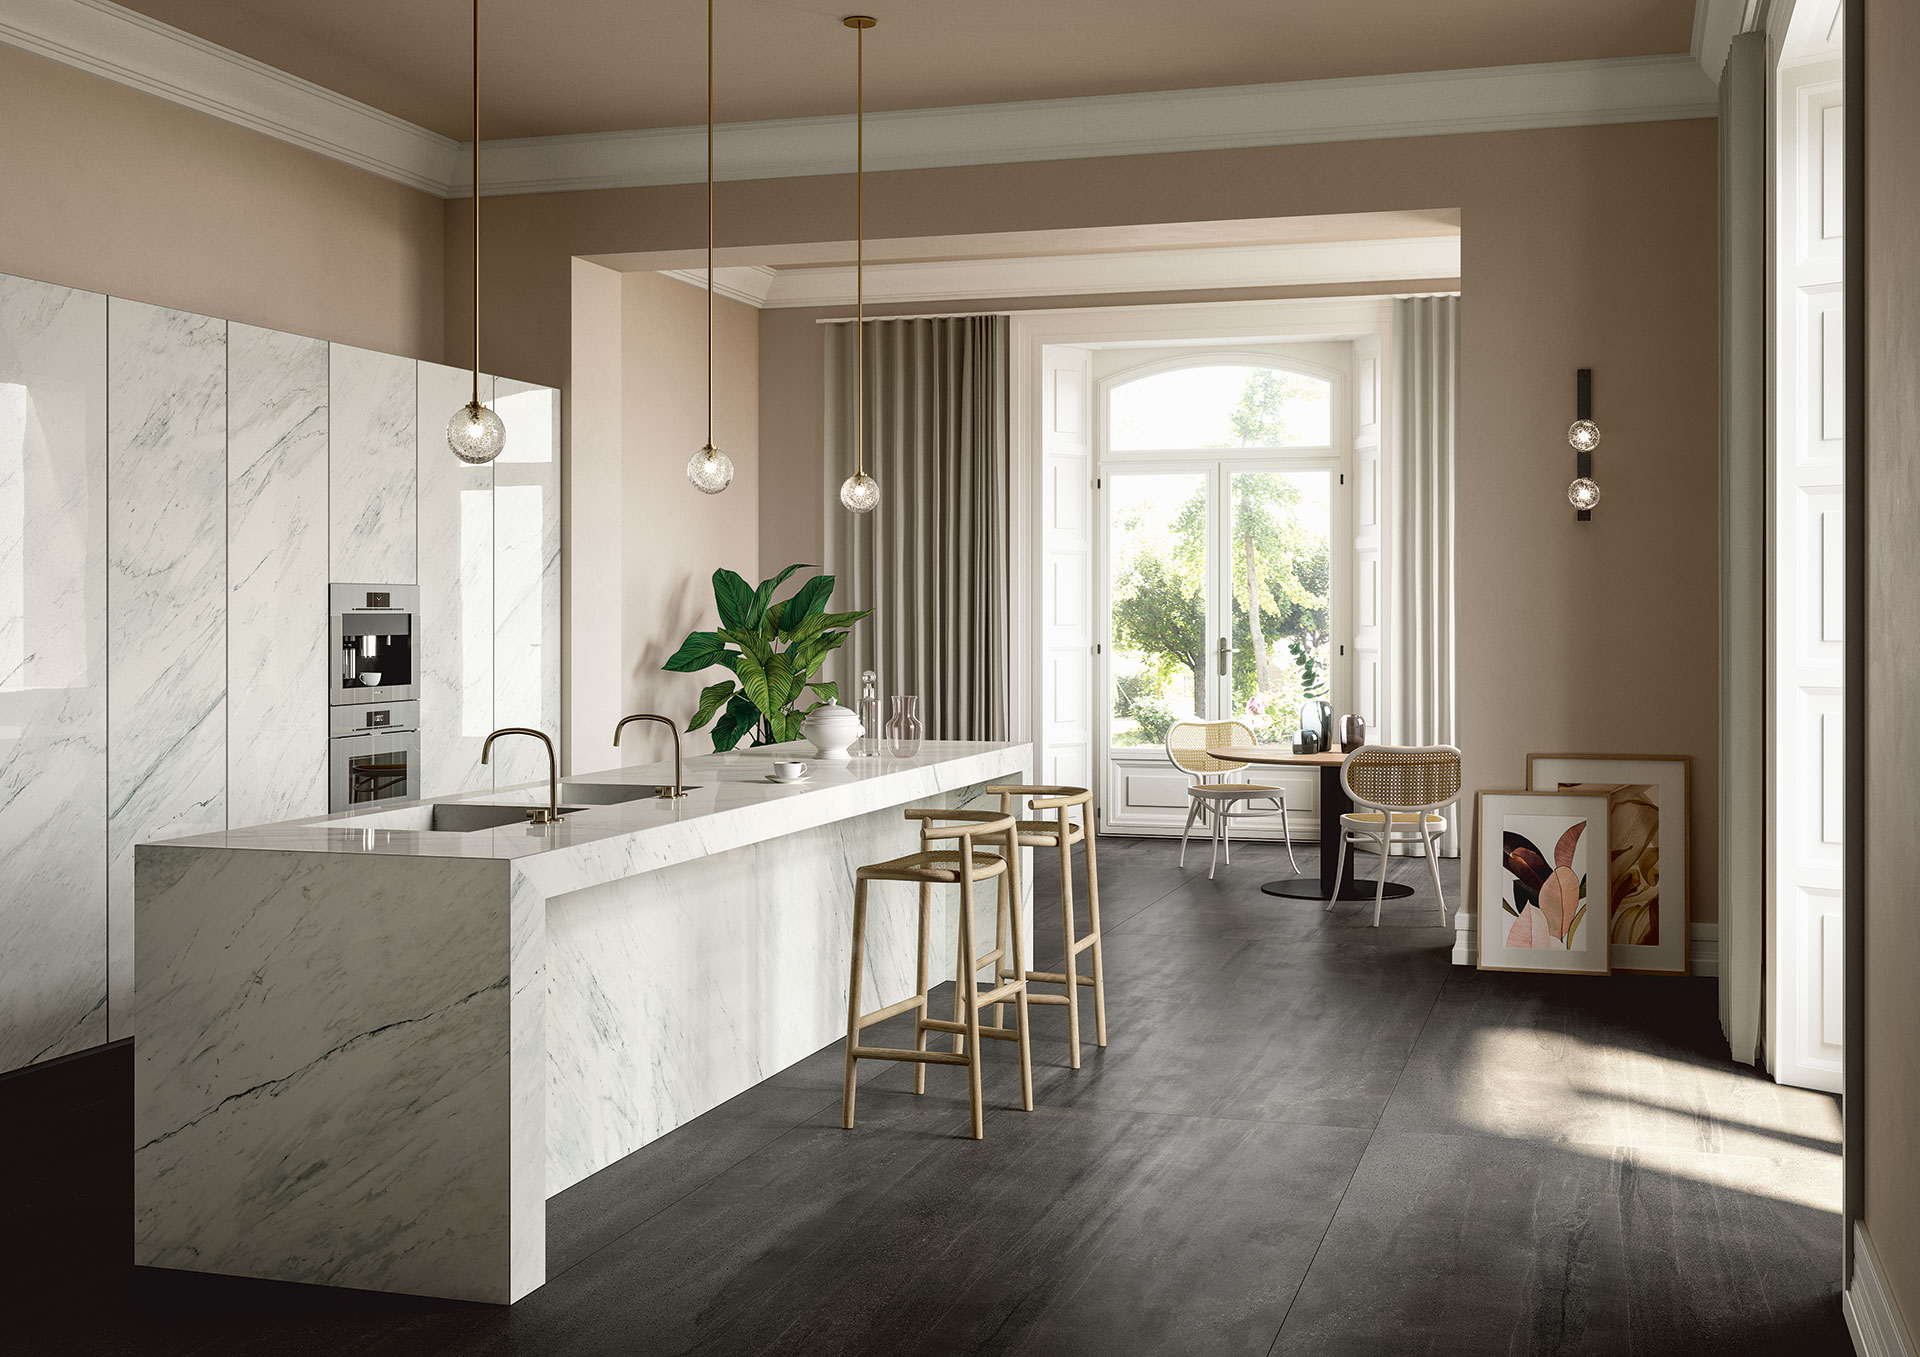 Piano Cucina Gres Opinioni let be inspired by sapienstone kitchen countertops - gallery